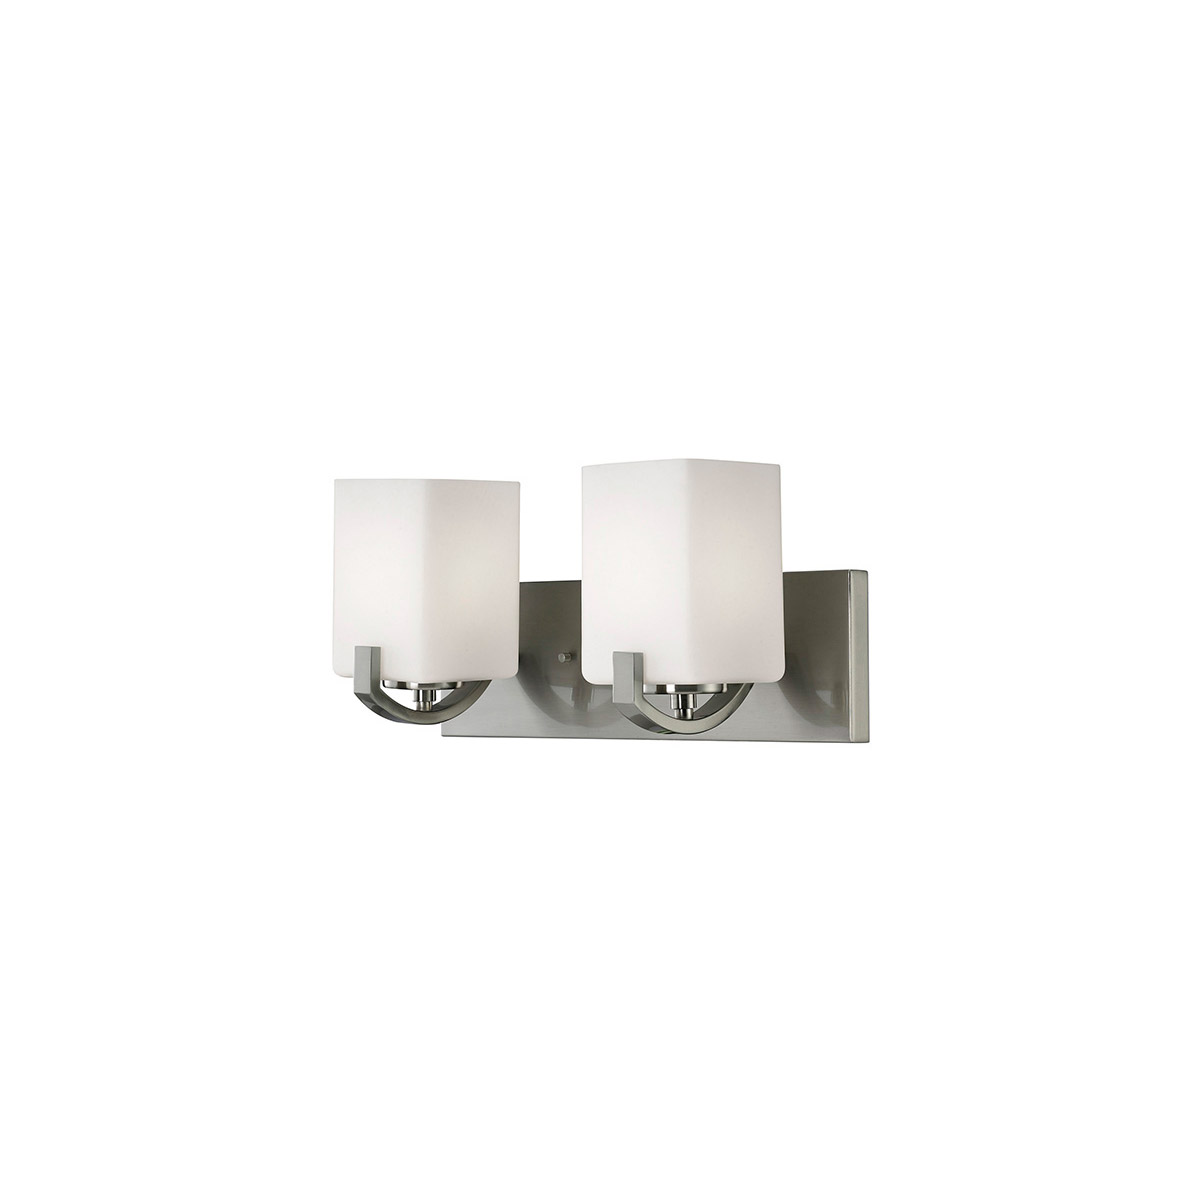 Bathroom vanity 2 light fixtures with brushed nickel finish a bulb 16 200 watts